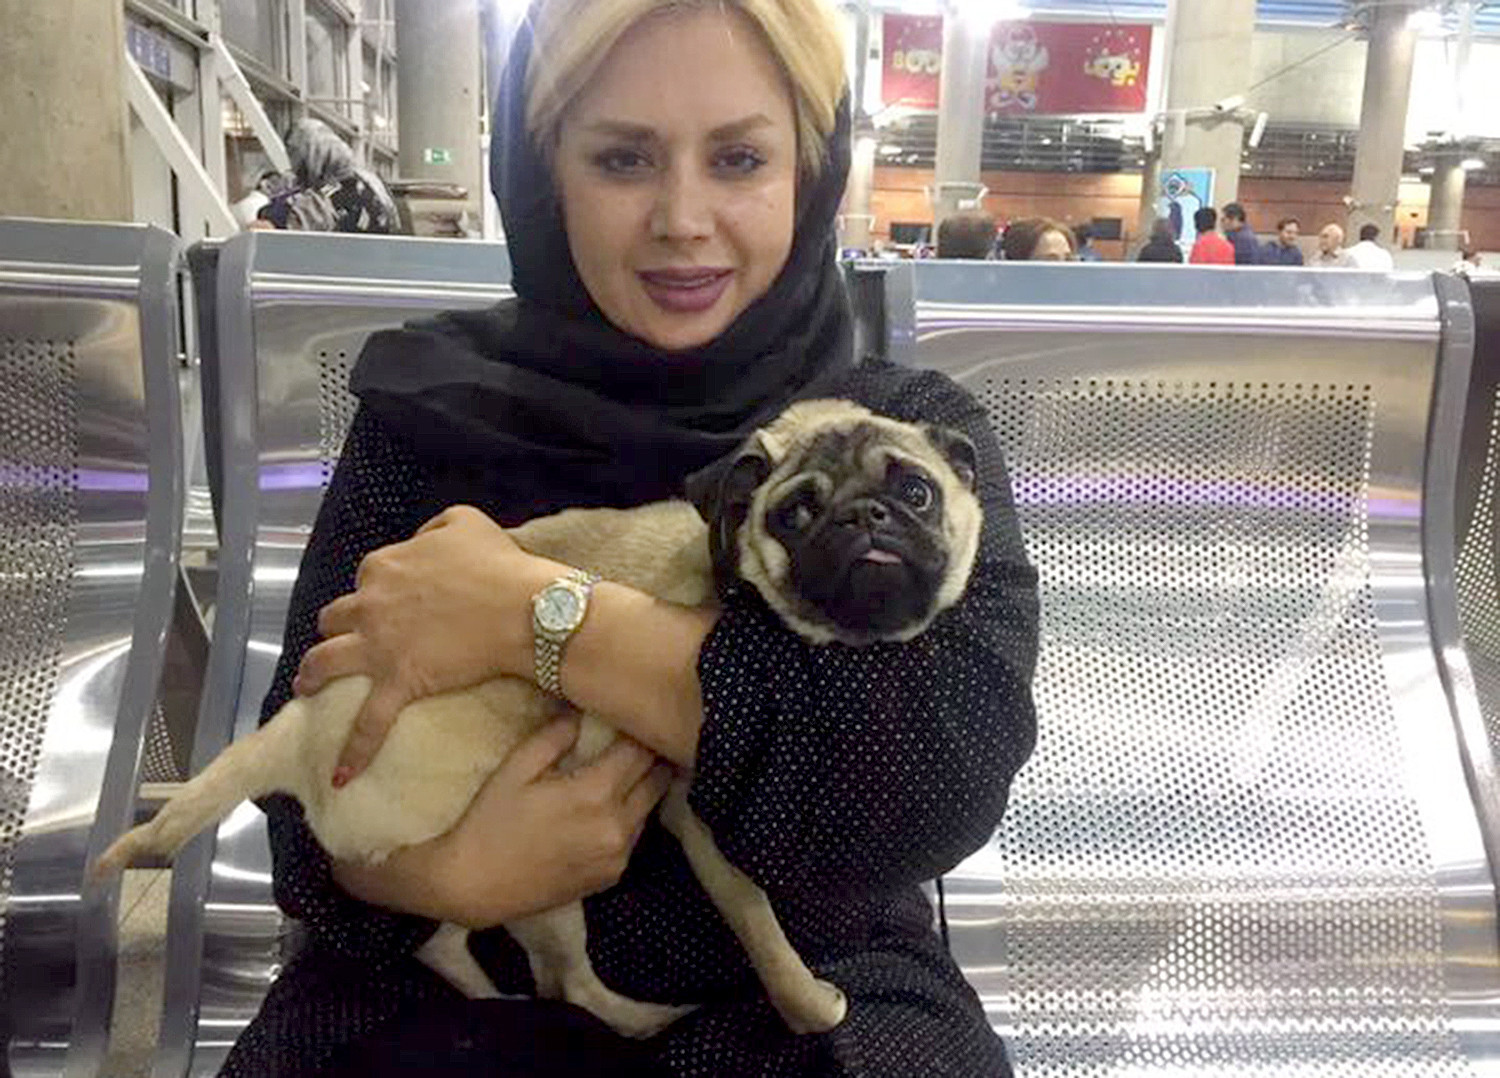 Katy Kargosha holds a rescued pug inside Tehran Imam Khomeini International Airport, where she was in-country only four hours to pick-up the injured dog.